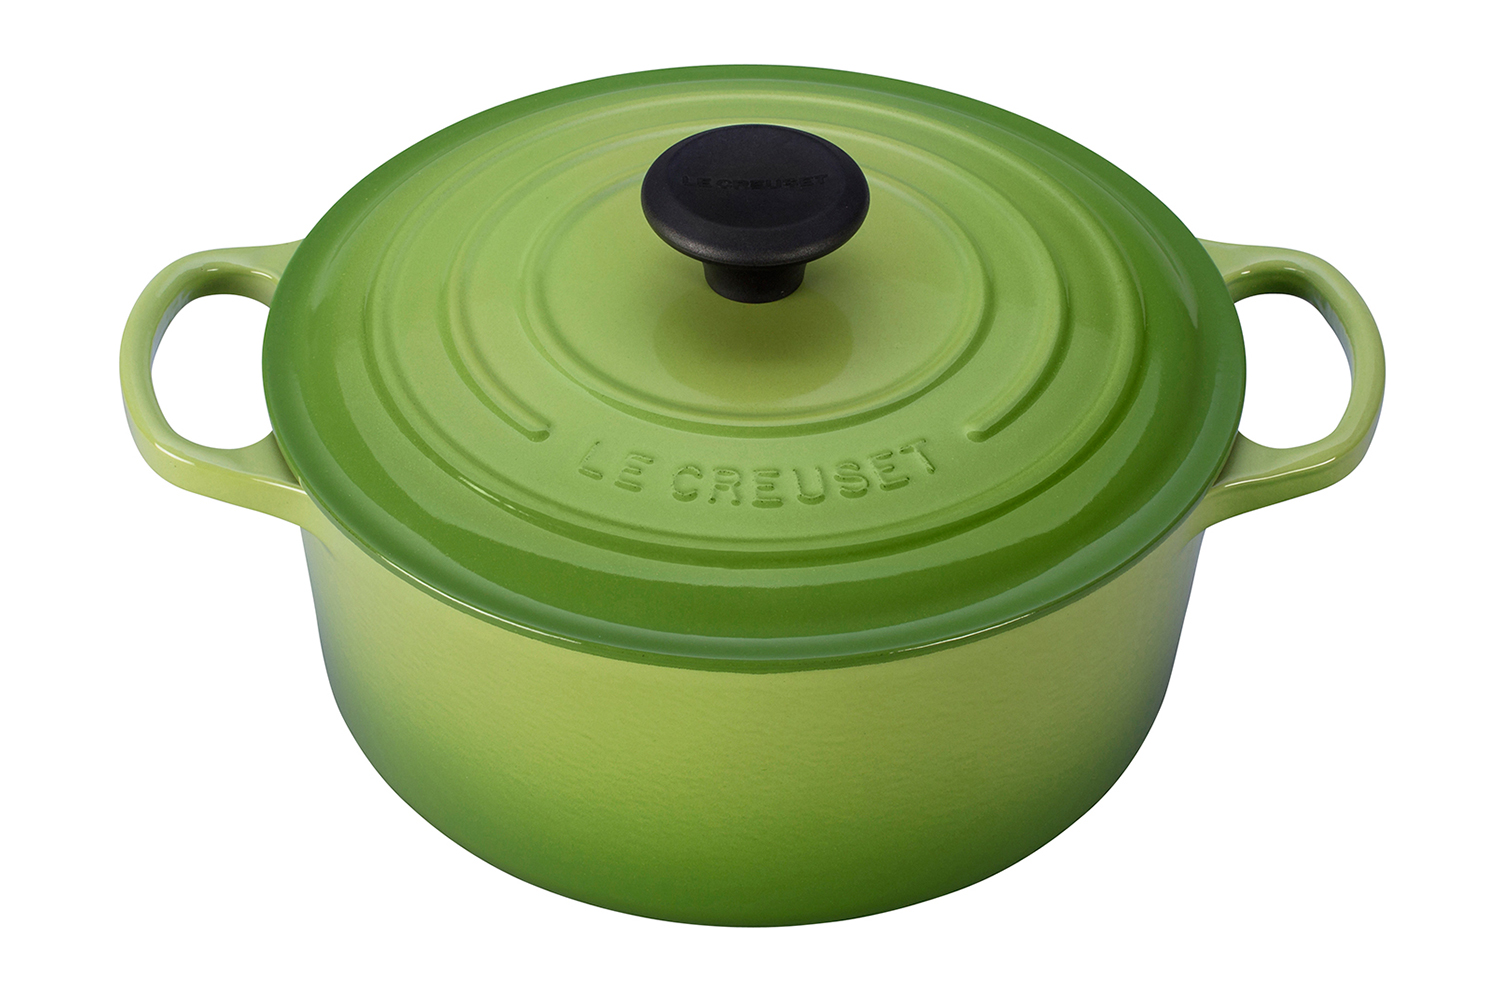 Le Creuset Signature Cast Iron 4 1/2 qt. Round Dutch Oven - Palm